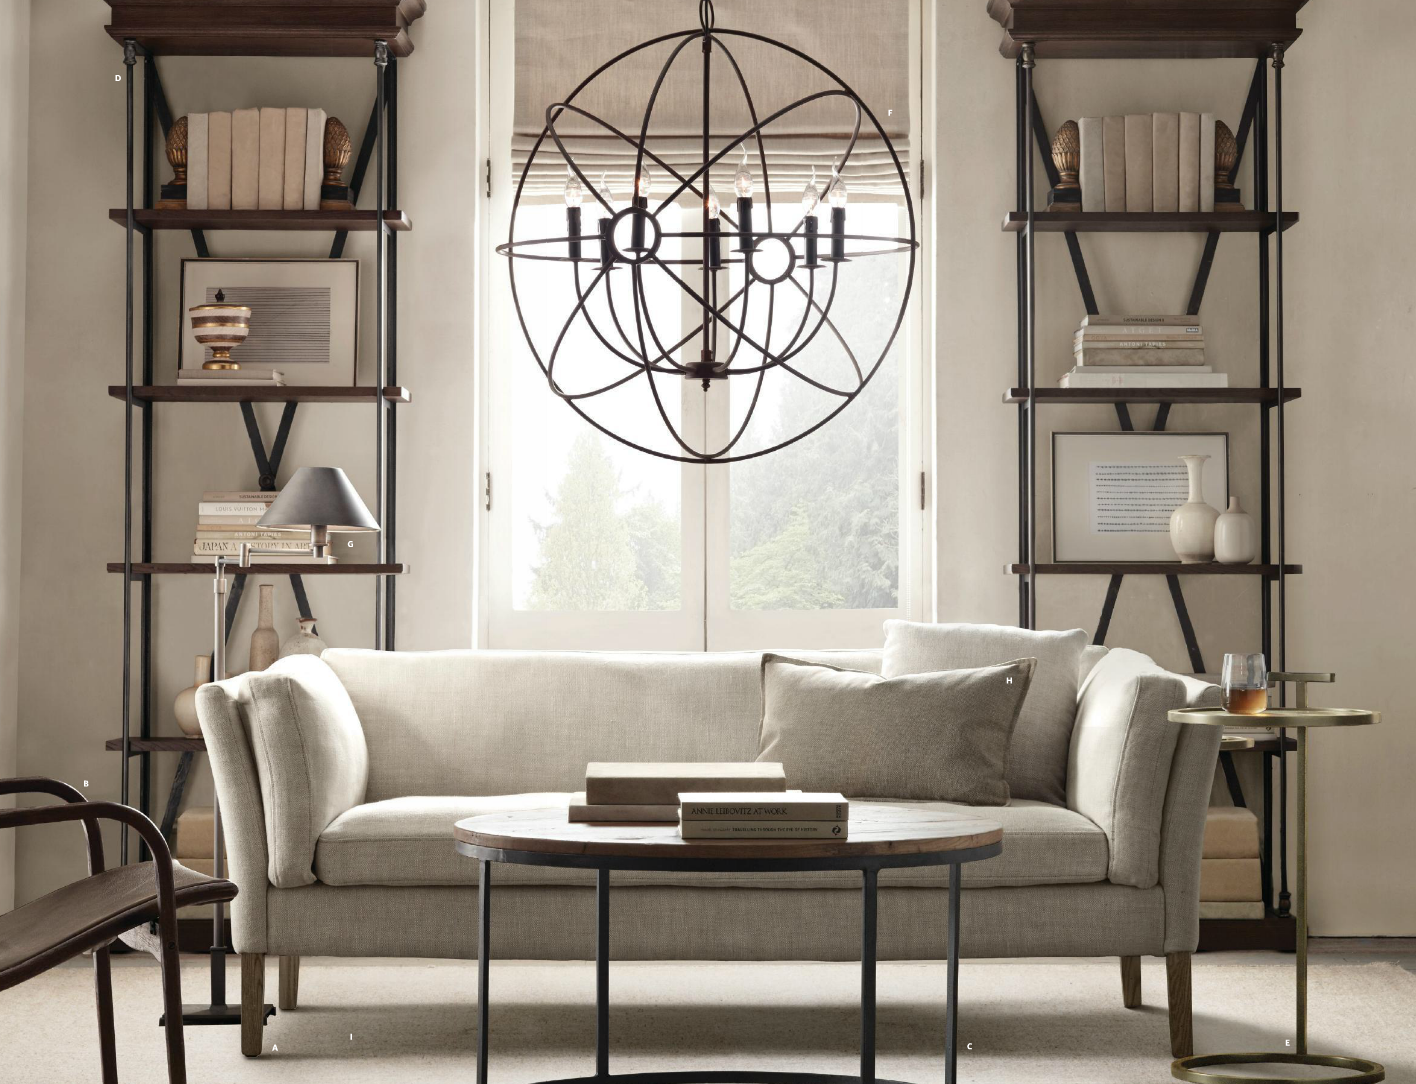 Restoration Hardware Small Spaces Inspiration Ideas For